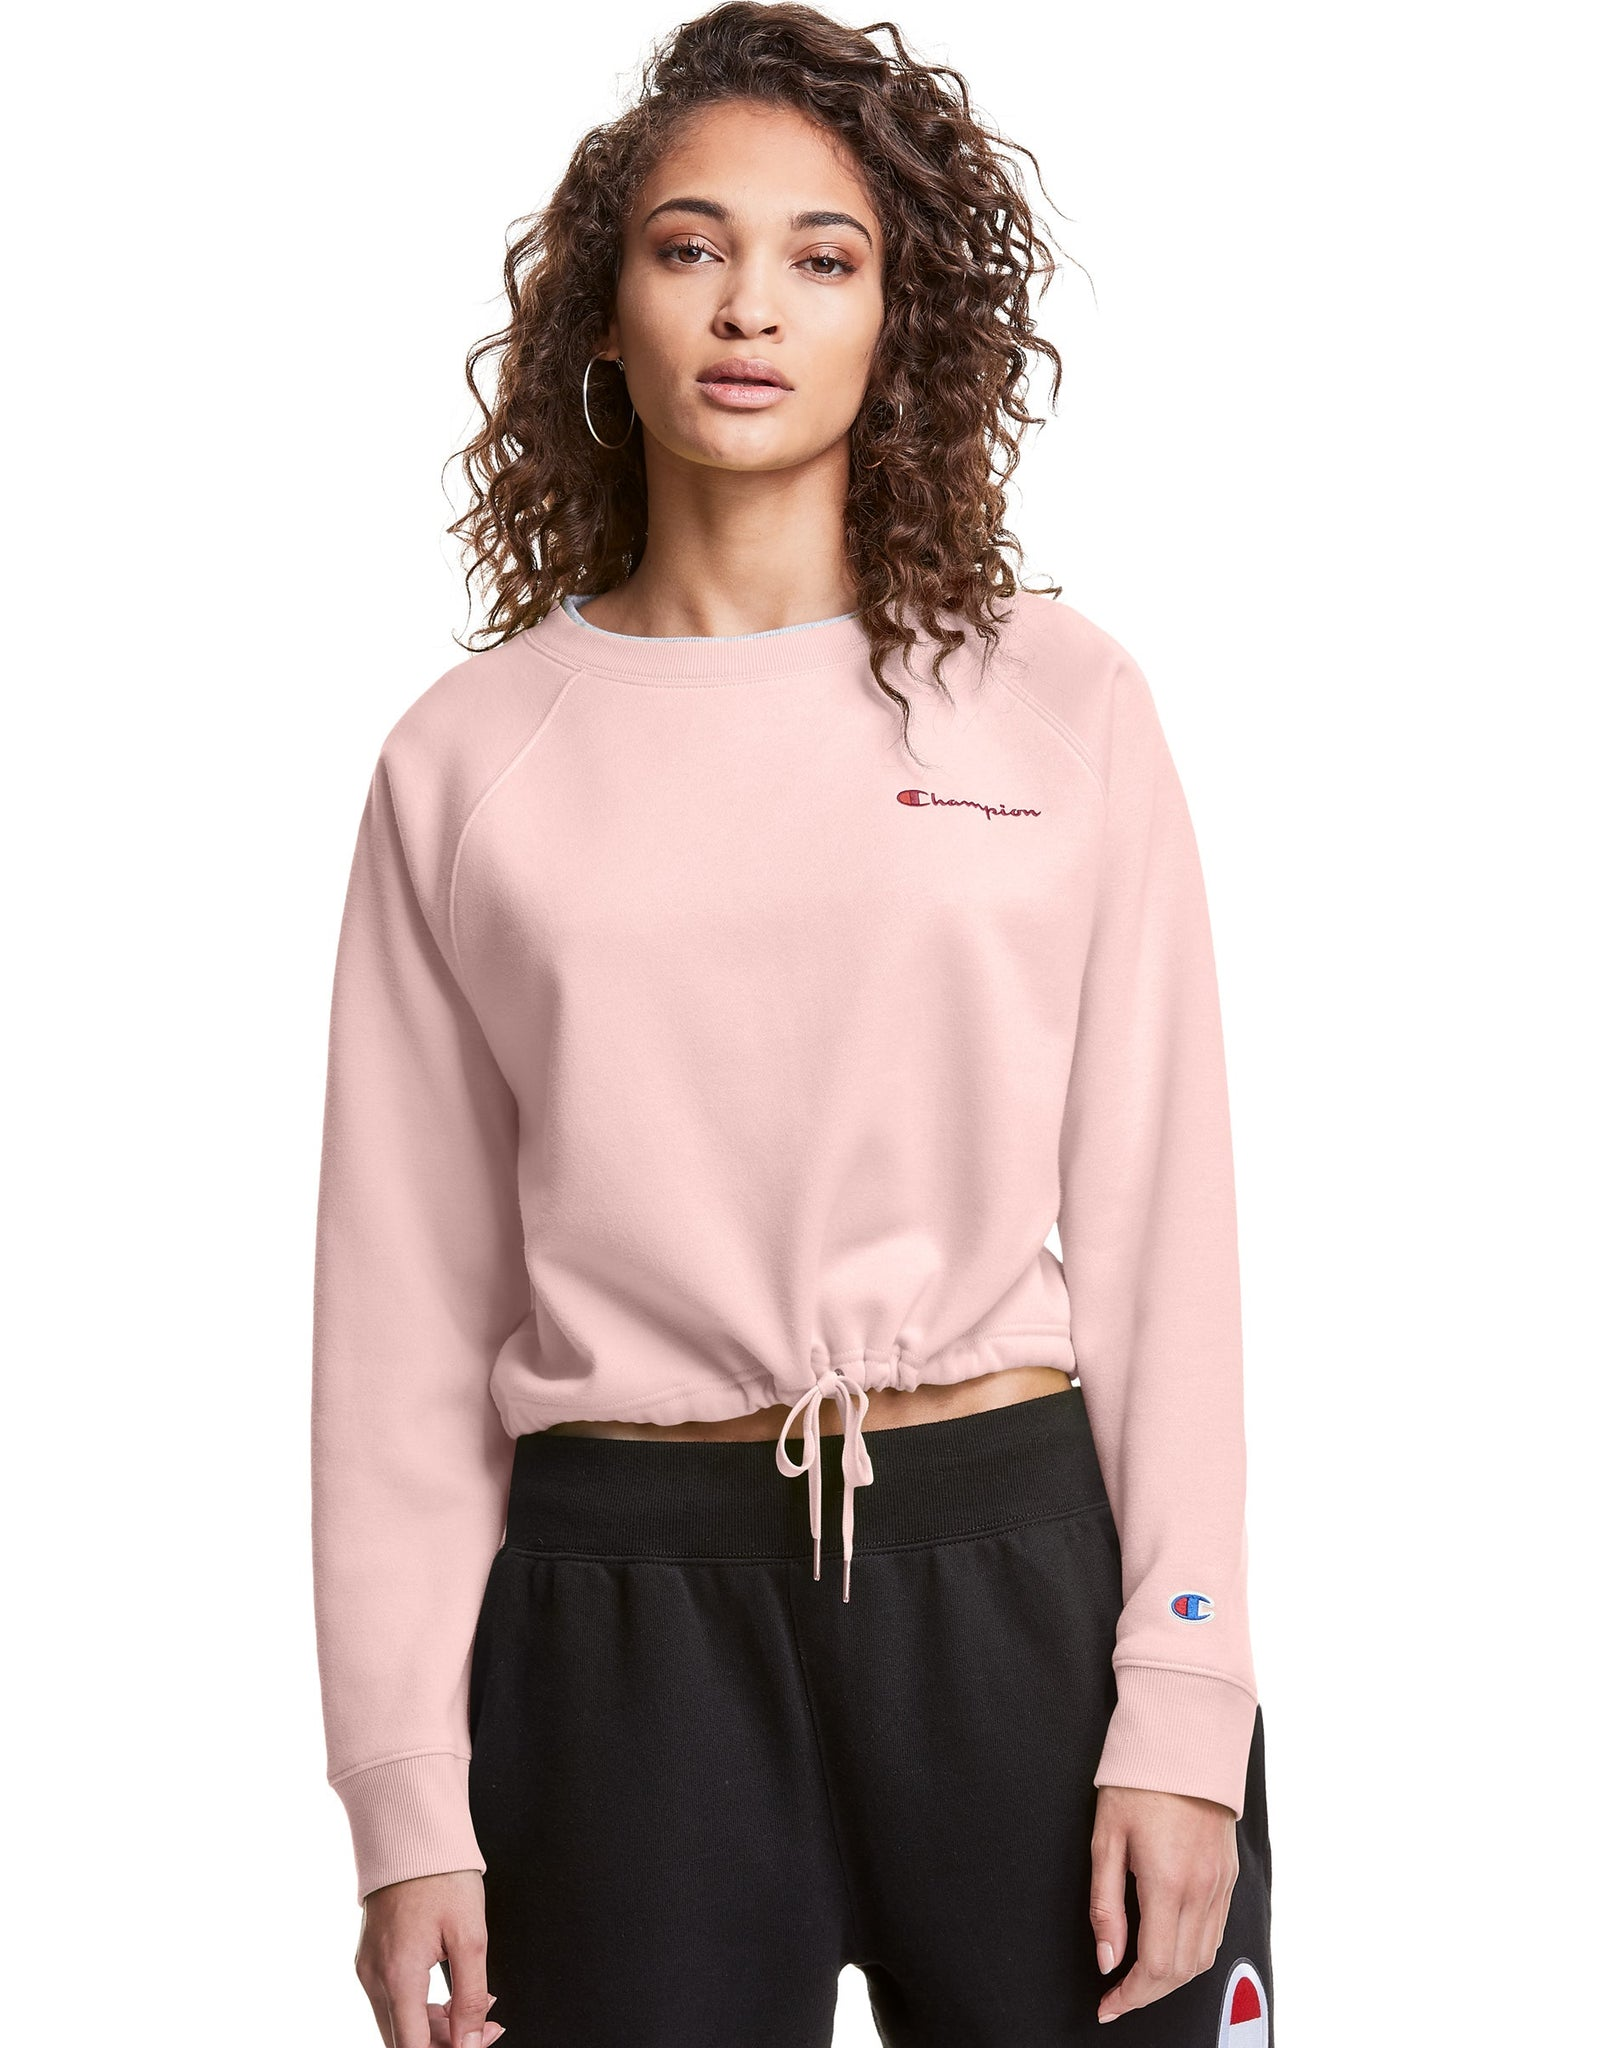 CHAMPION LADIES CAMPUS FLEECE CROPPED HUSH PINK CREWNECK SWEATER